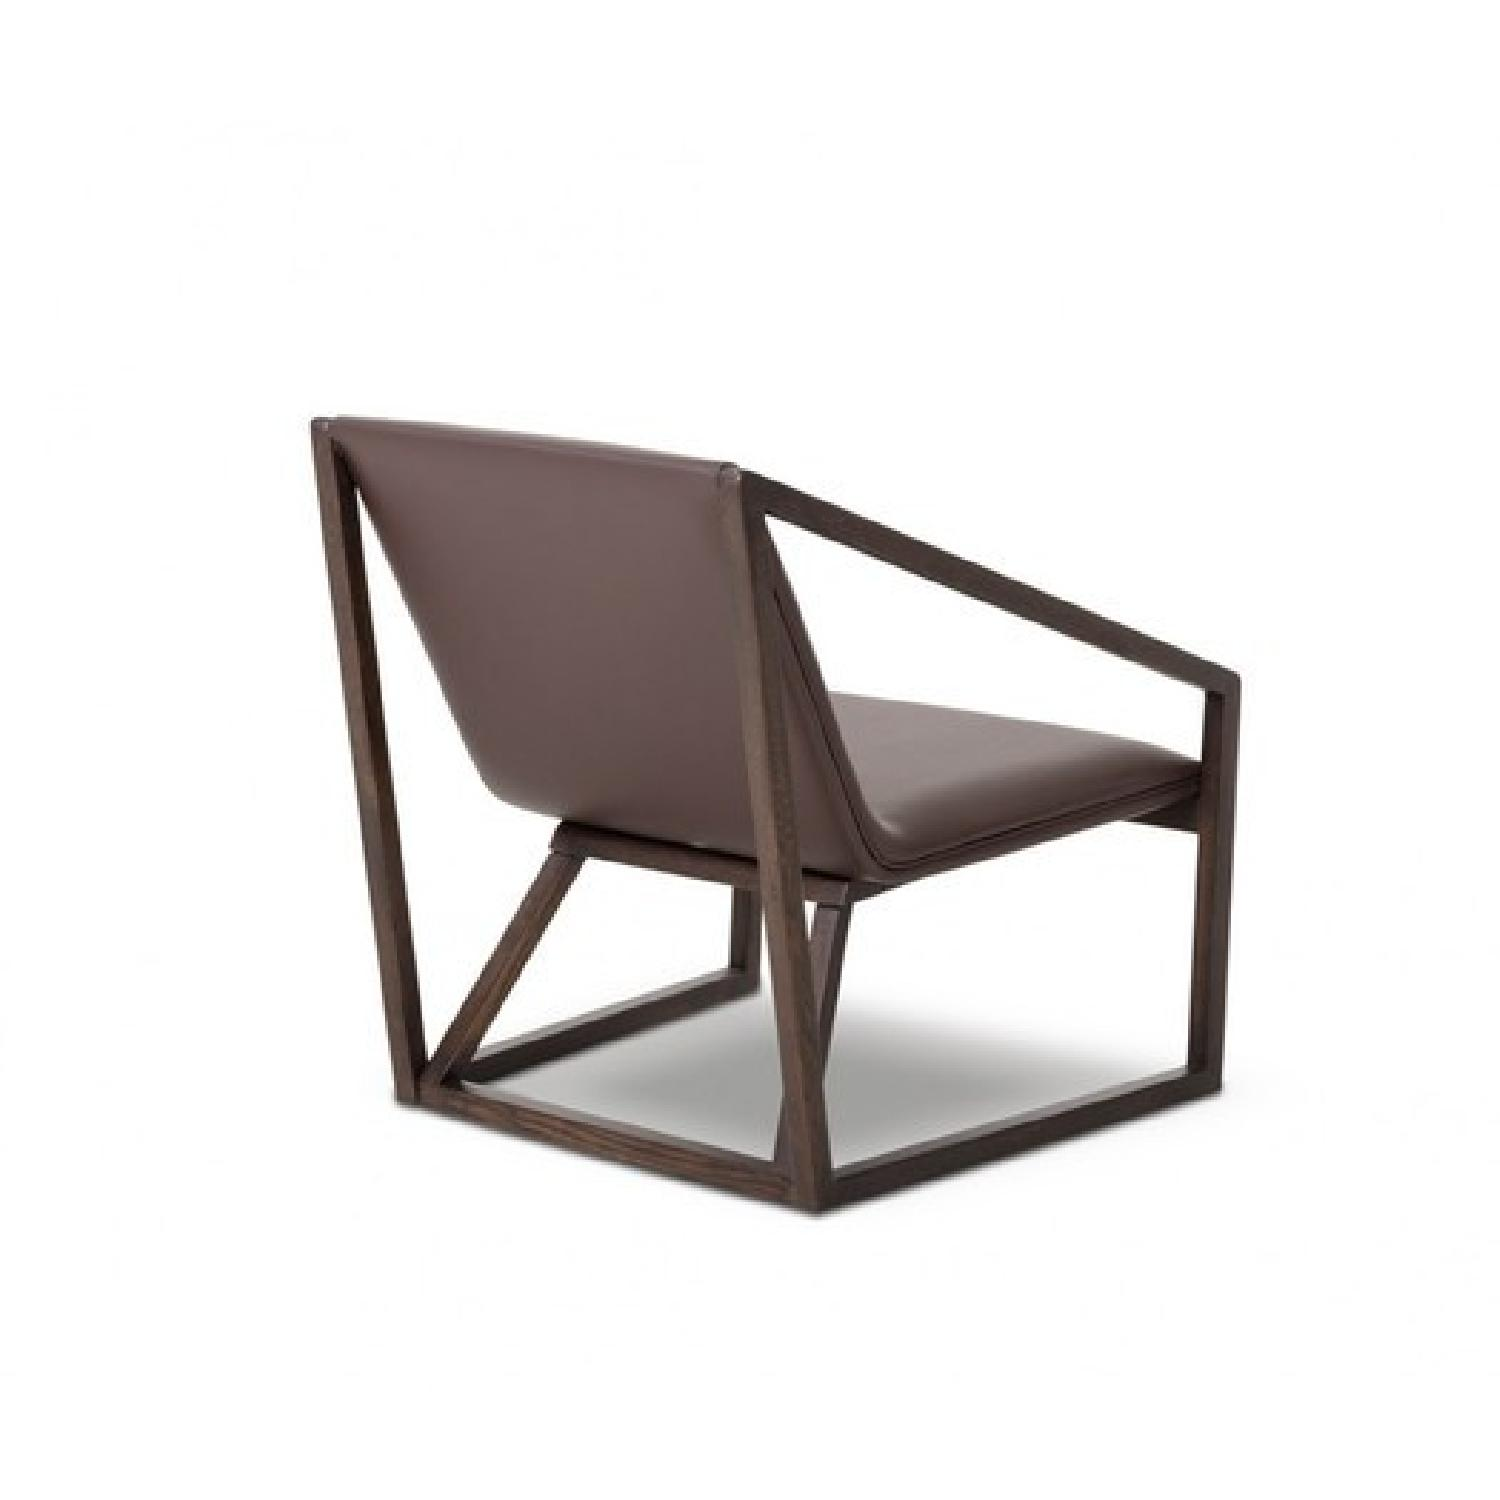 VIG Furniture Divani Casa Taranto Lounge Chair - image-1